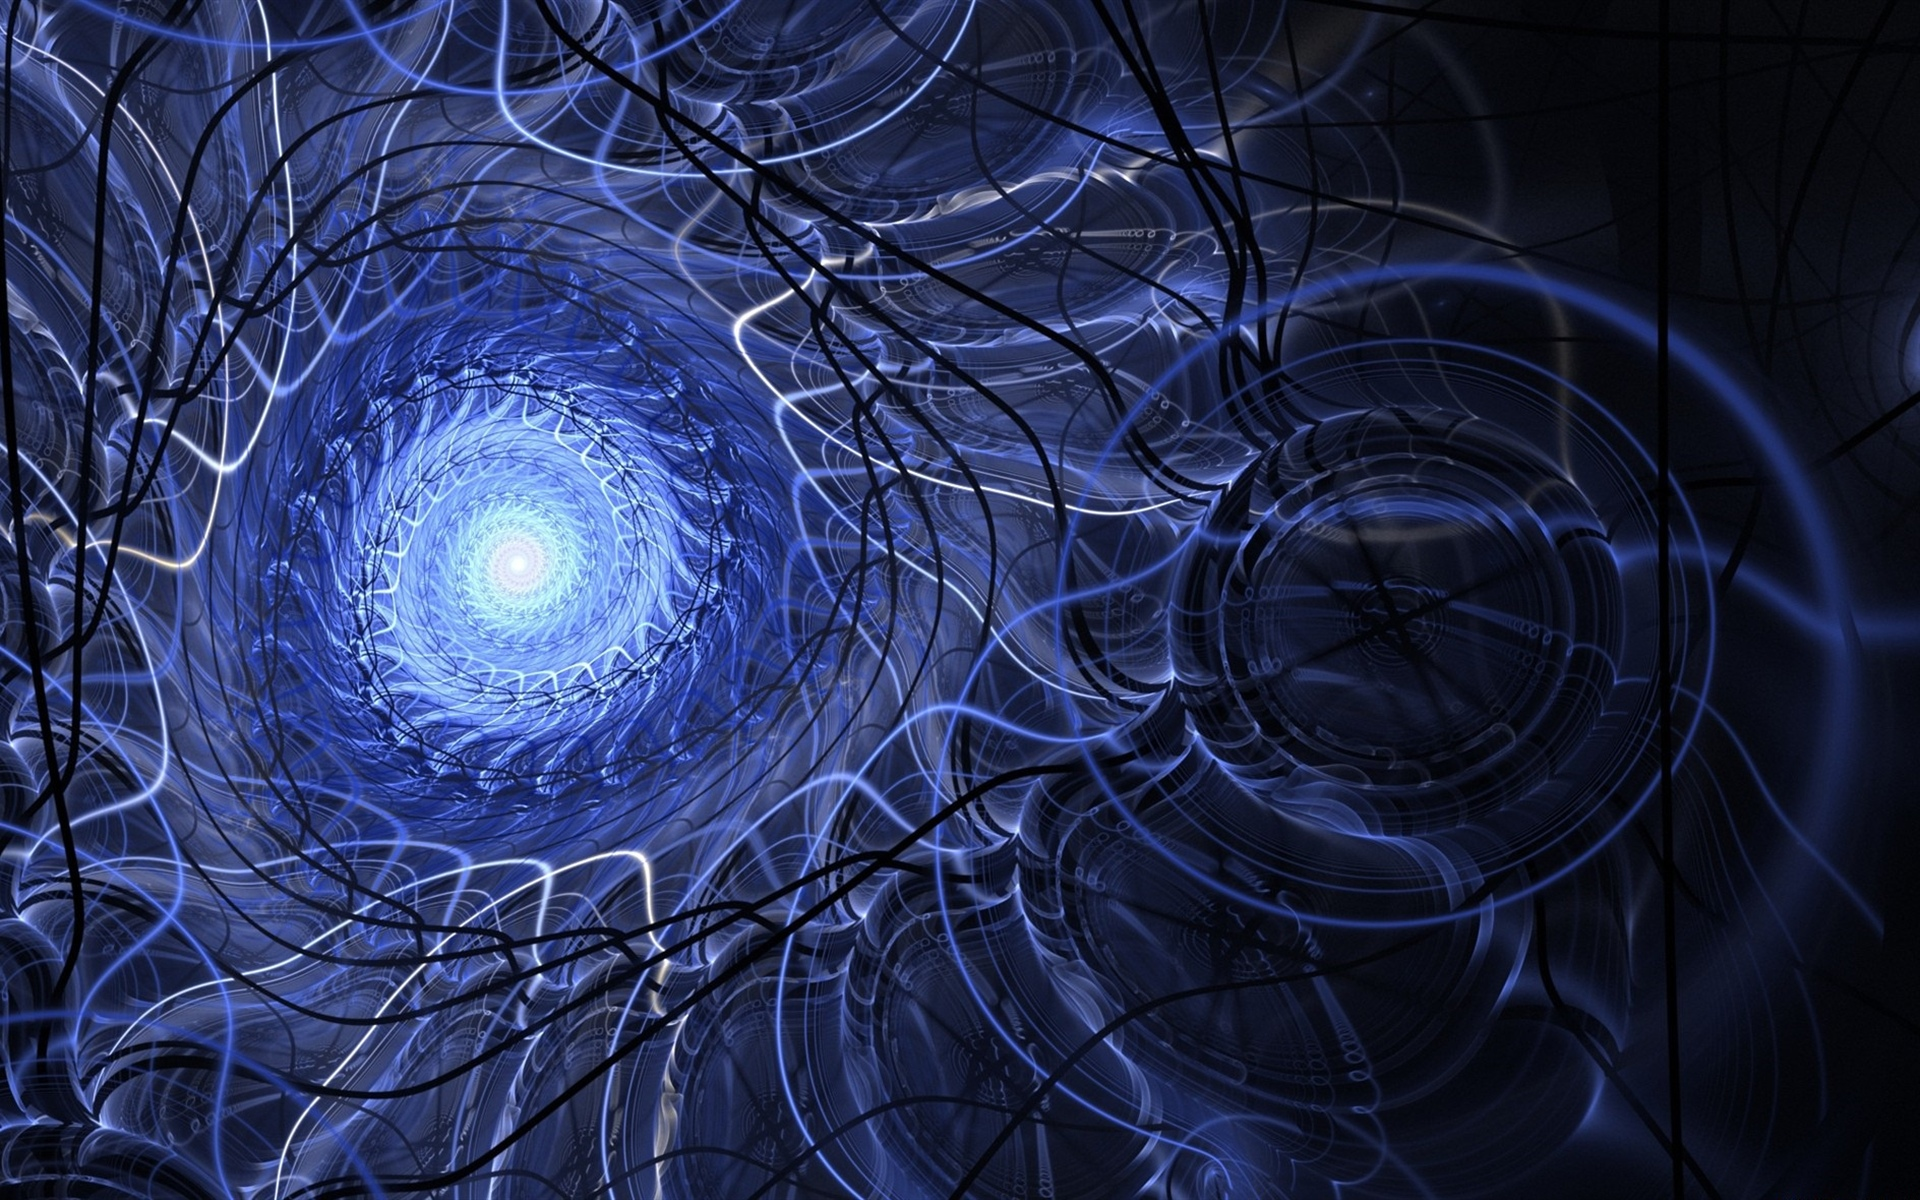 Channel, light, abstract, spiral, creative 1920x1200 wallpaper